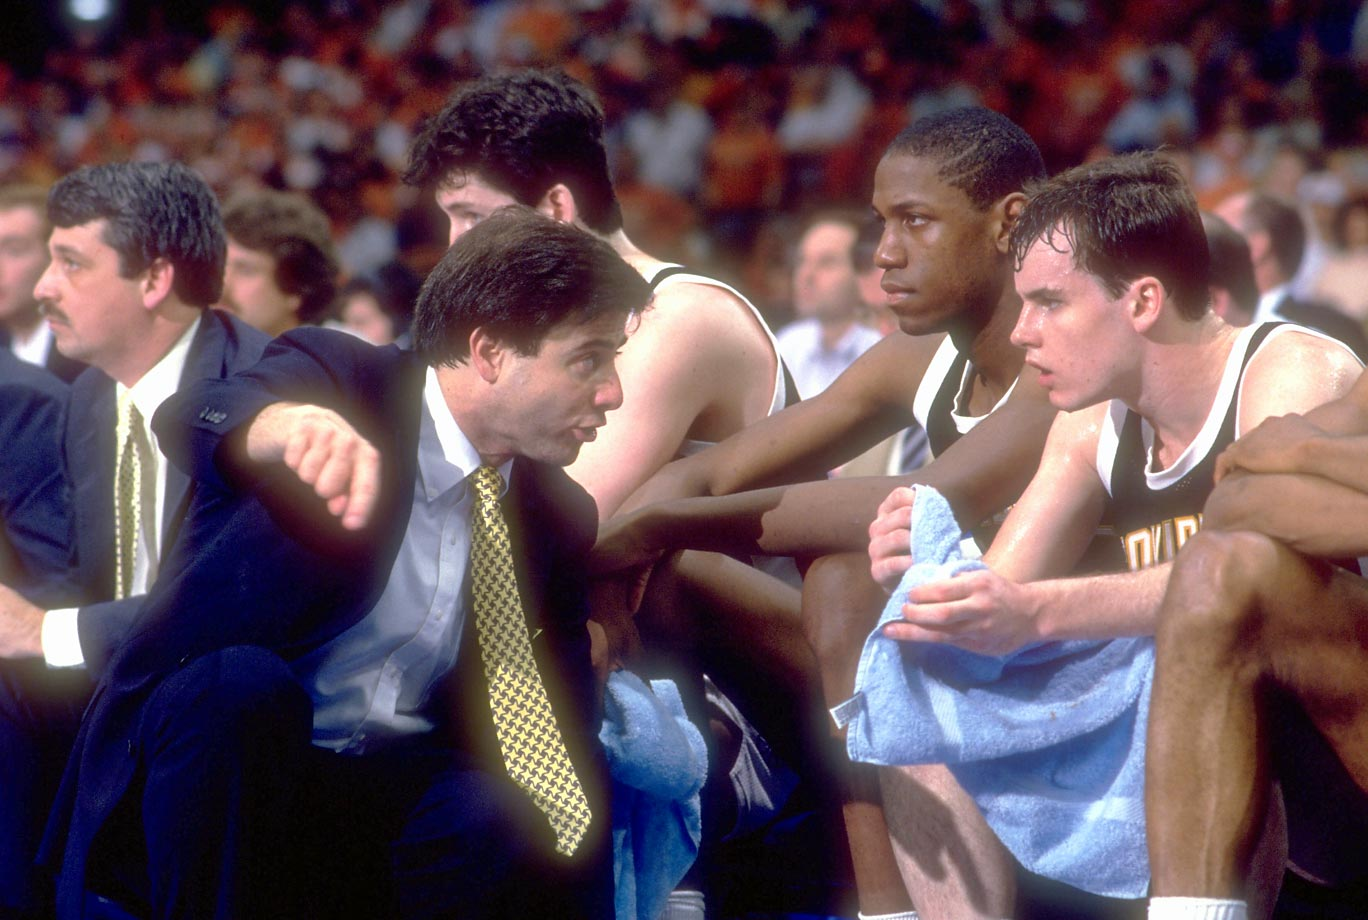 Providence coach Rick Pitino talks to point guard Billy Donovan during the Final Four.